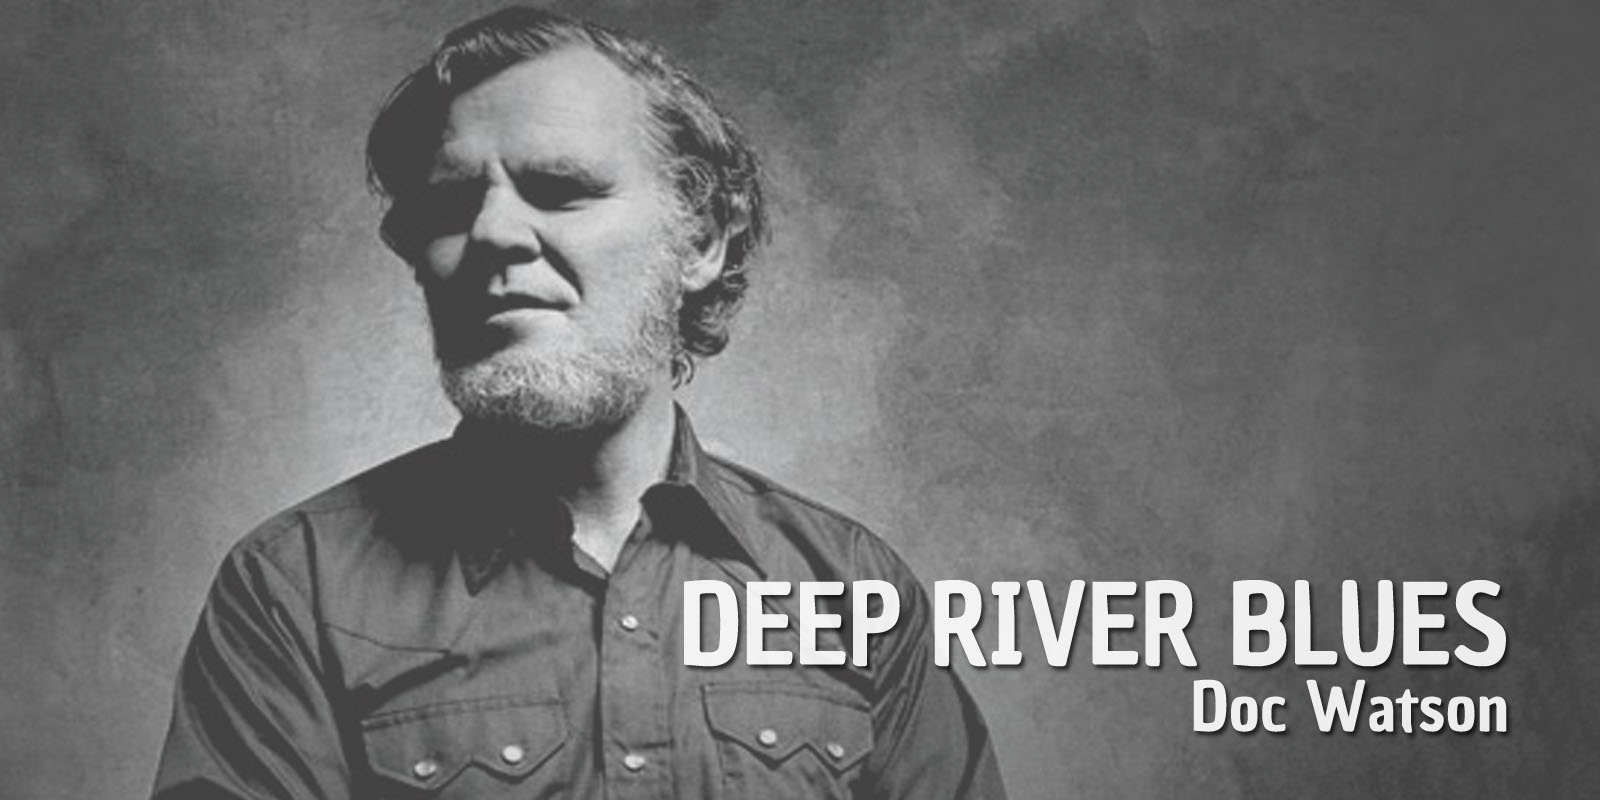 Burninguitar show you how to play Deep River Blues by Doc Watson. A great classic of Acoustic Blues Fingerstyle Guitar. PDF and Guitar Pro Tab includedBurninguitar show you how to play Deep River Blues by Doc Watson. A great classic of Acoustic Blues Fingerstyle Guitar. PDF and Guitar Pro Tab included